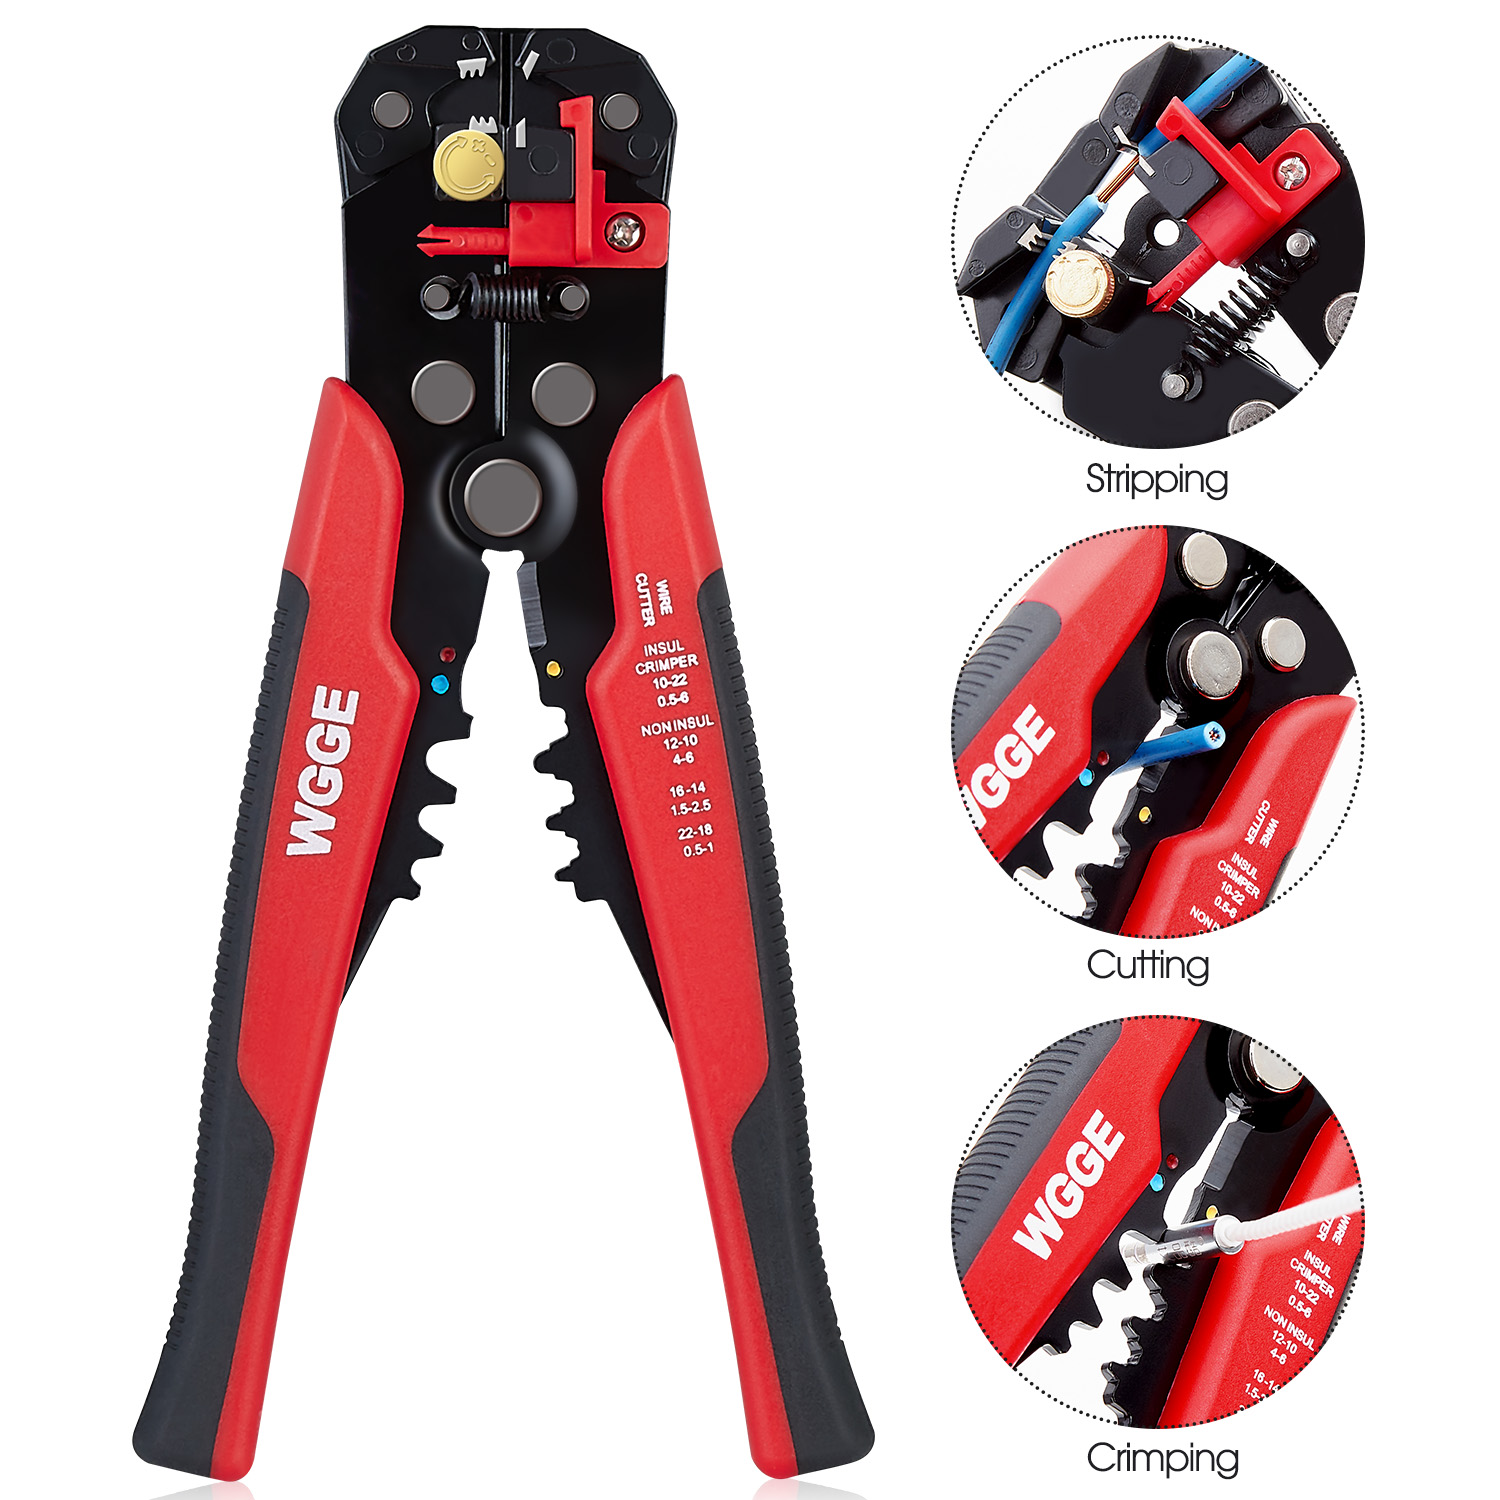 WGGE WG-014 Self-Adjusting Insulation Wire Stripper. For stripping ...